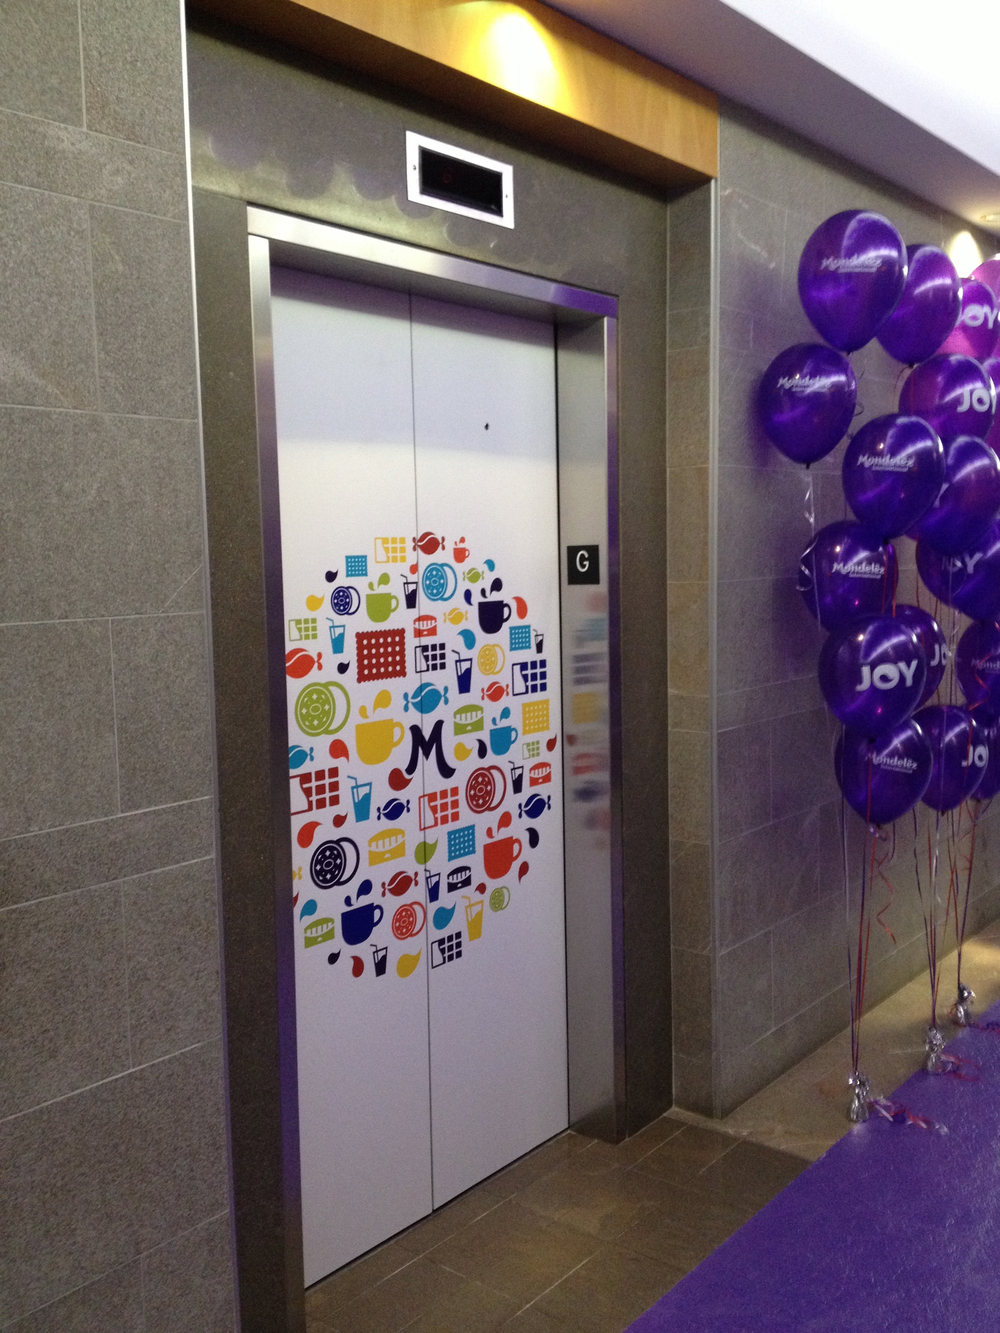 Elevator door graphics - Mondelez